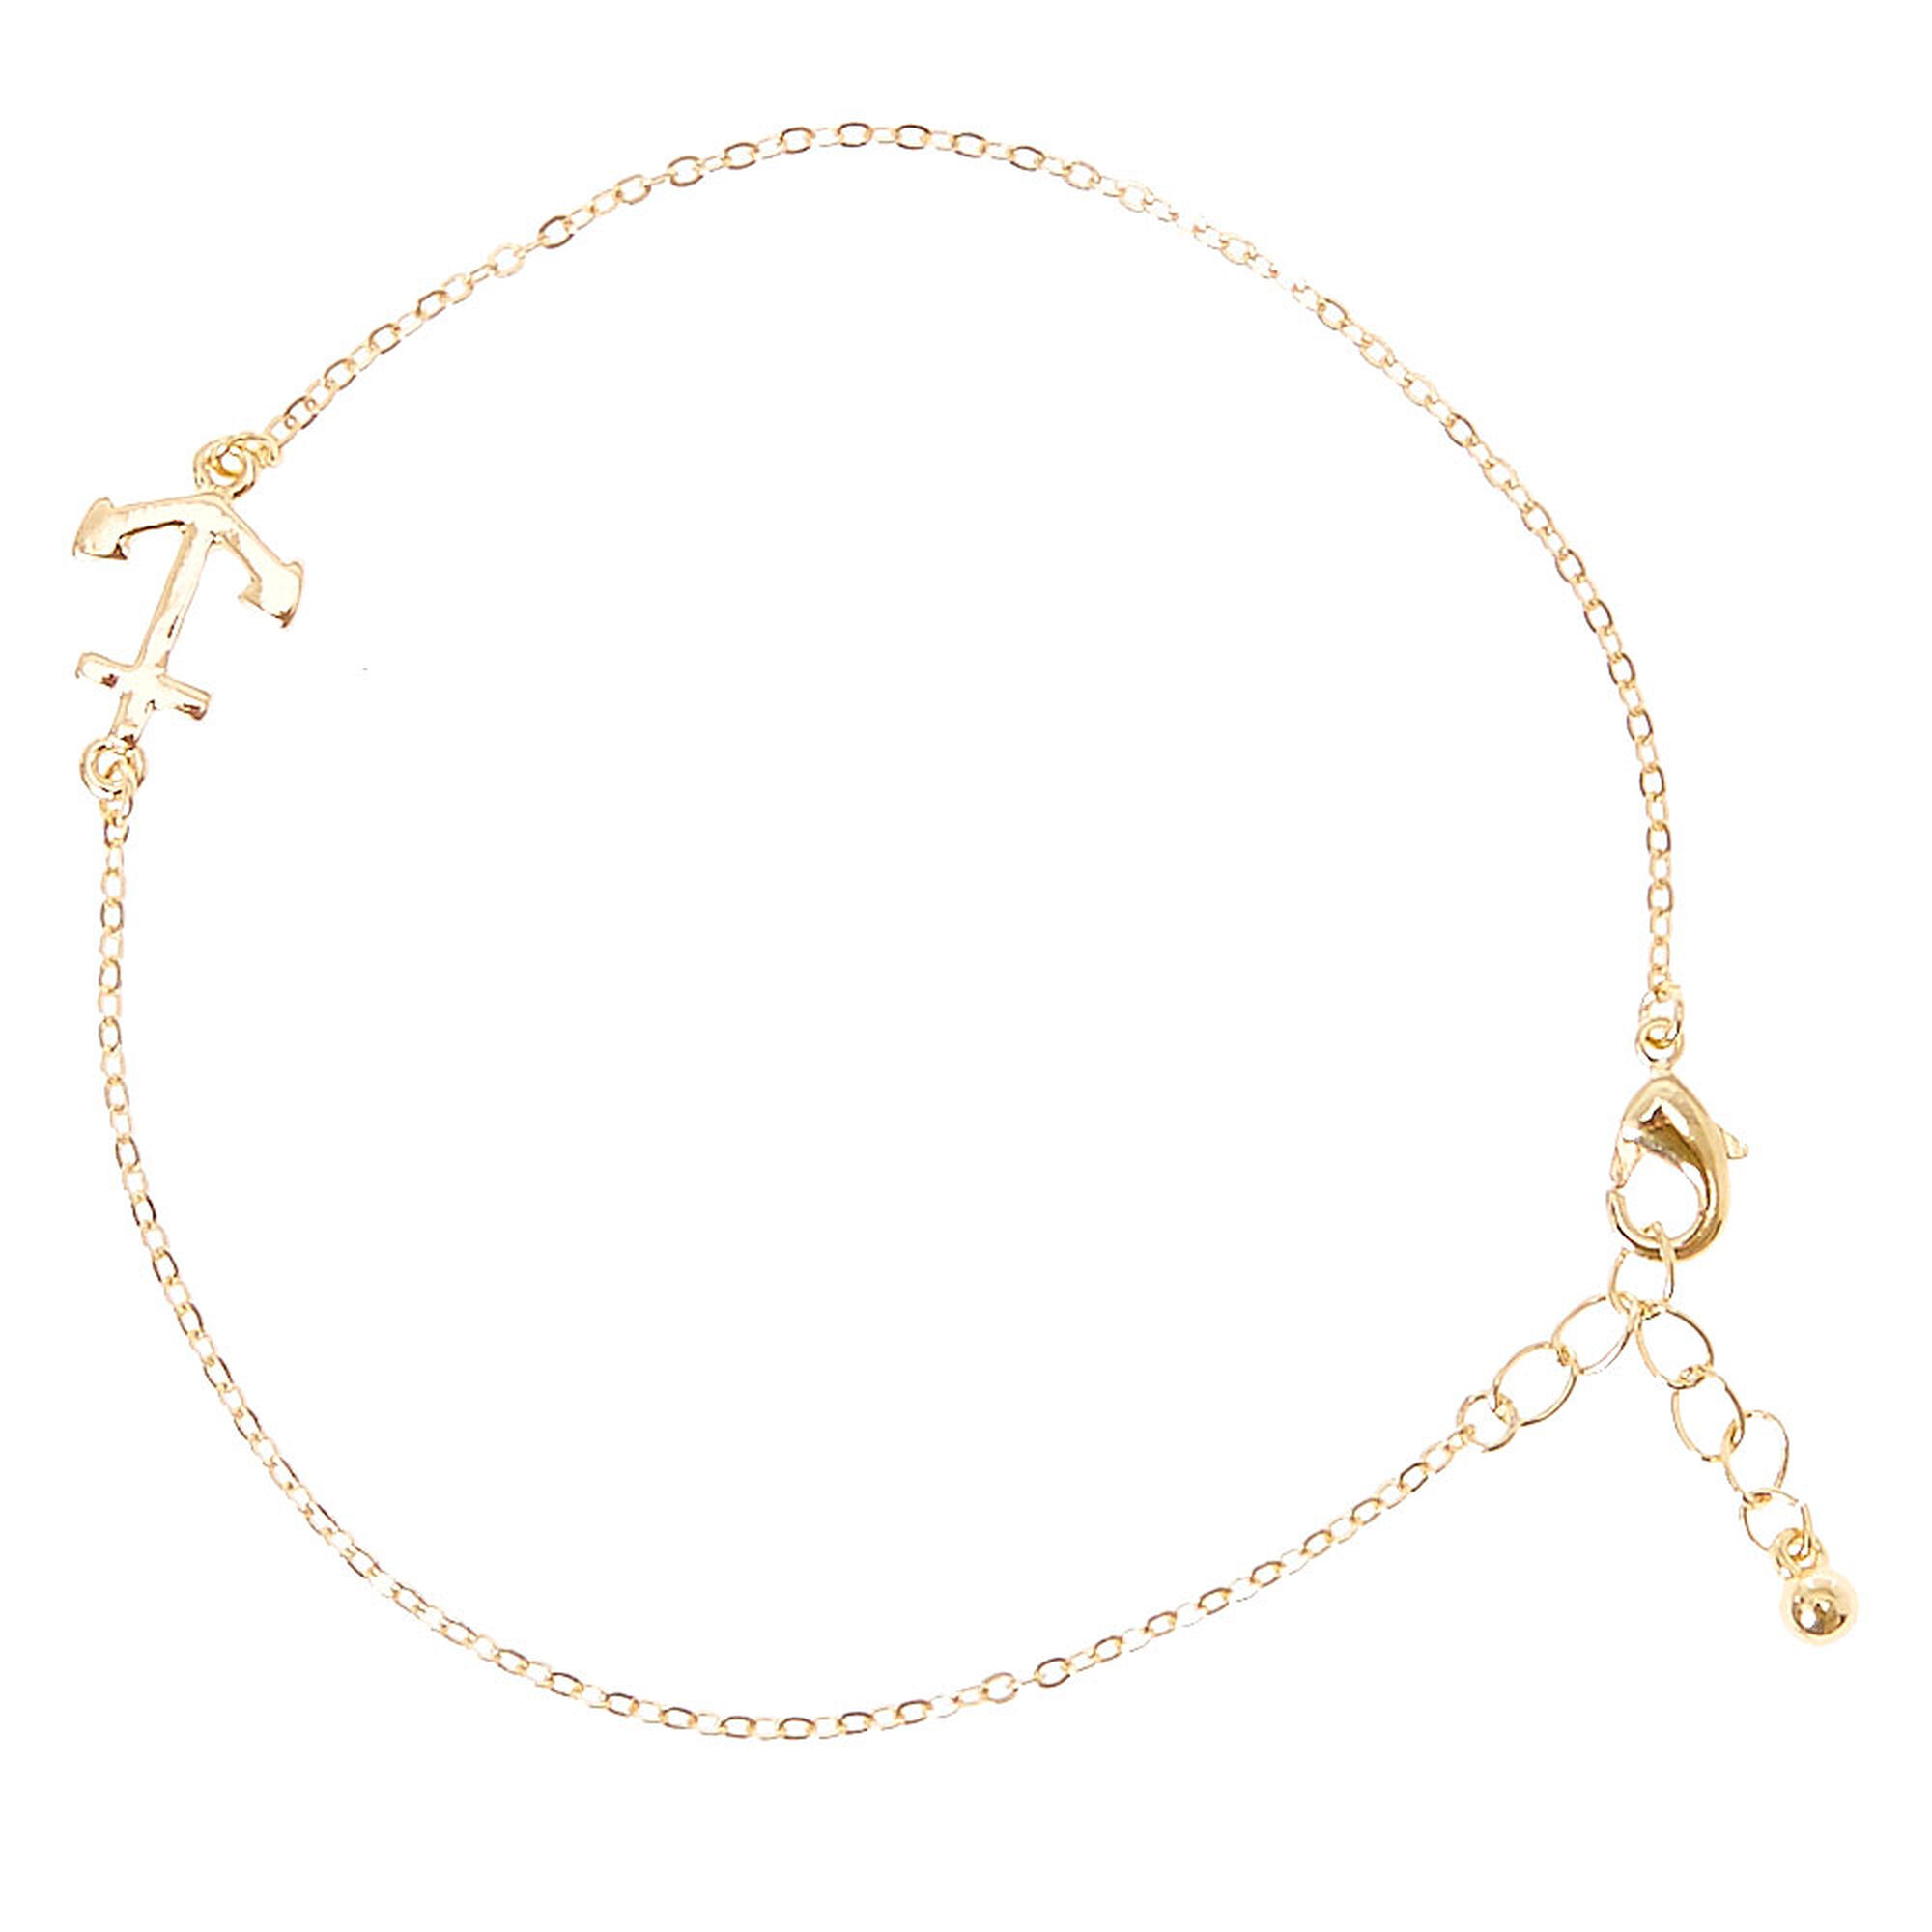 new for nice item from chain anklet gift anklets silver bracelet fashion beads foot gold girl ankle in jewelry color bracelets women